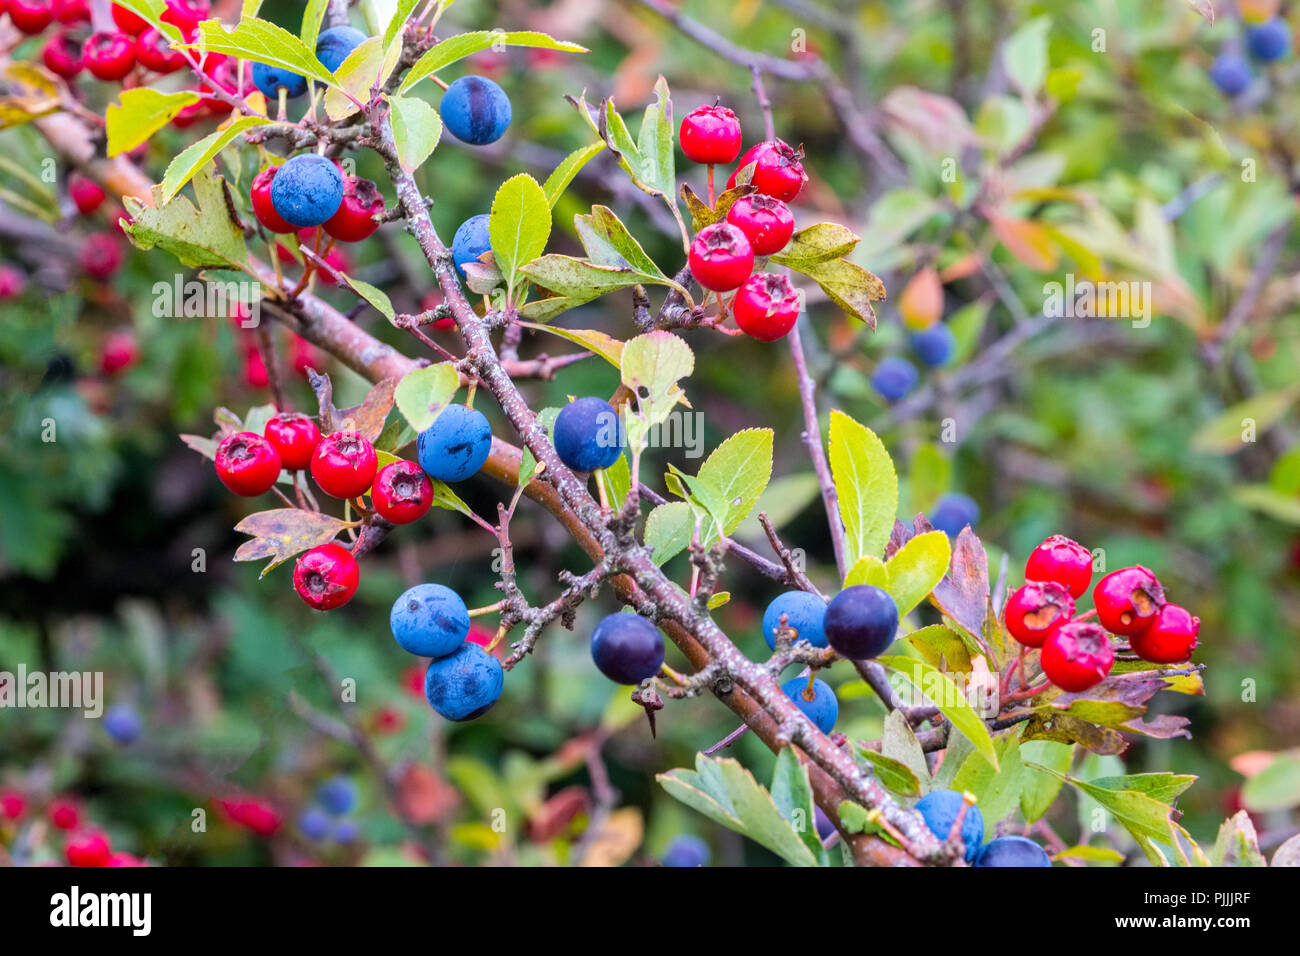 Hawthorn and Blackthorn   berries   in the hedgerows of the Peak District - Stock Image